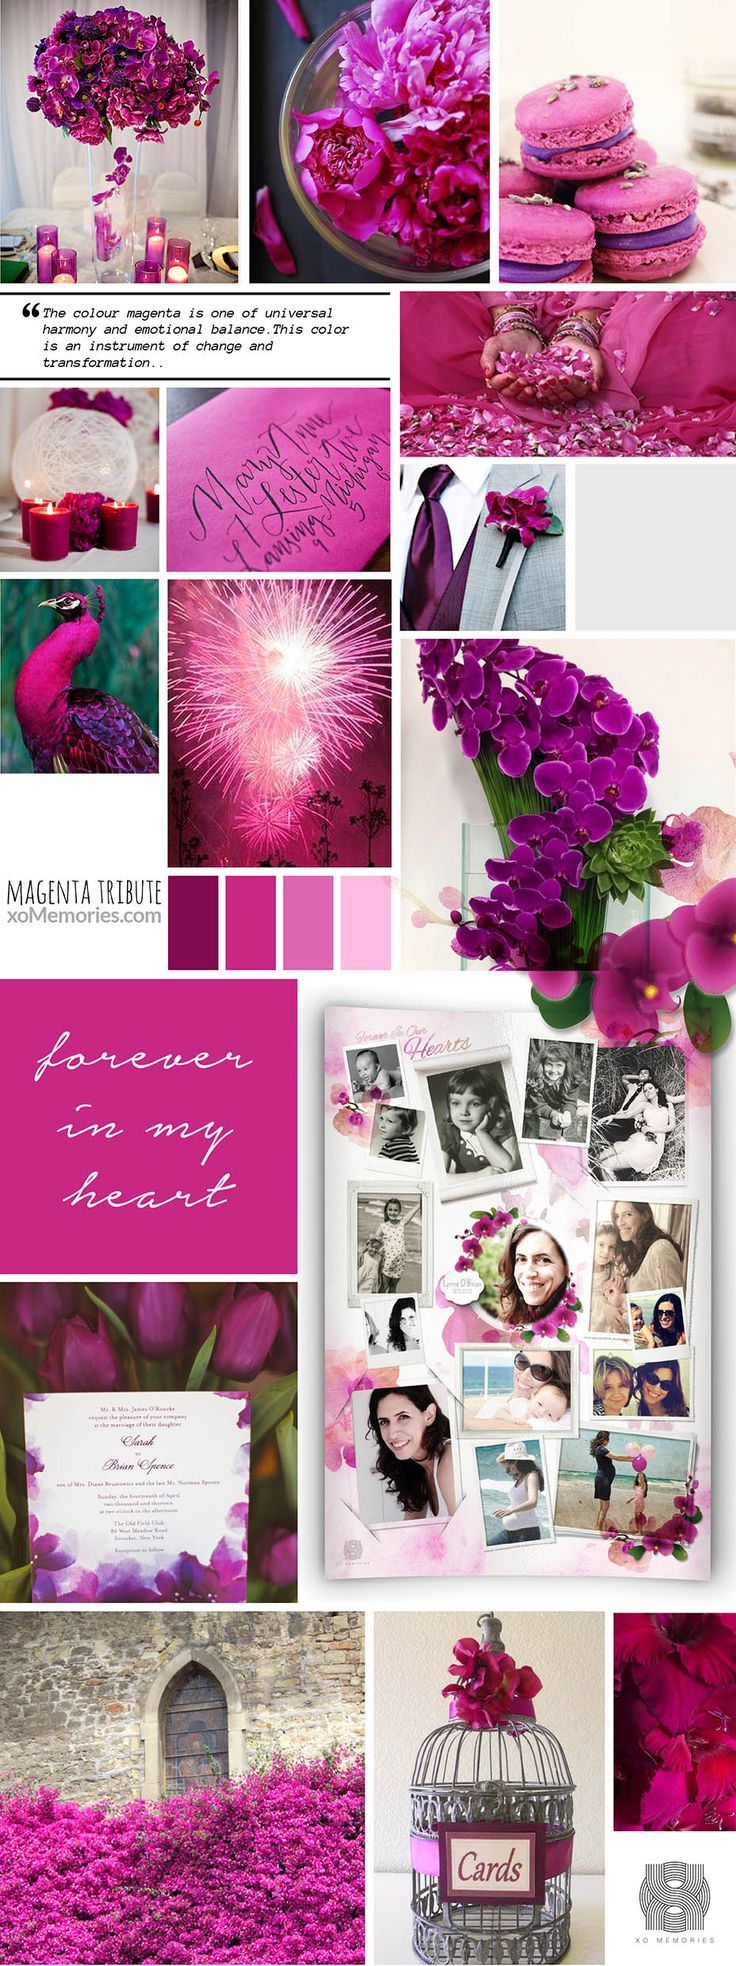 Does the colour magenta remind you of your loved one? Create a unique and memorable funeral ceremony using magenta.  See our Personalised Photo Memorial Collage Board template in this theme now at: http://xomemories.com/product/orchid/   or explore our gallery for other ideas. #magenta #tribute #xo #memories